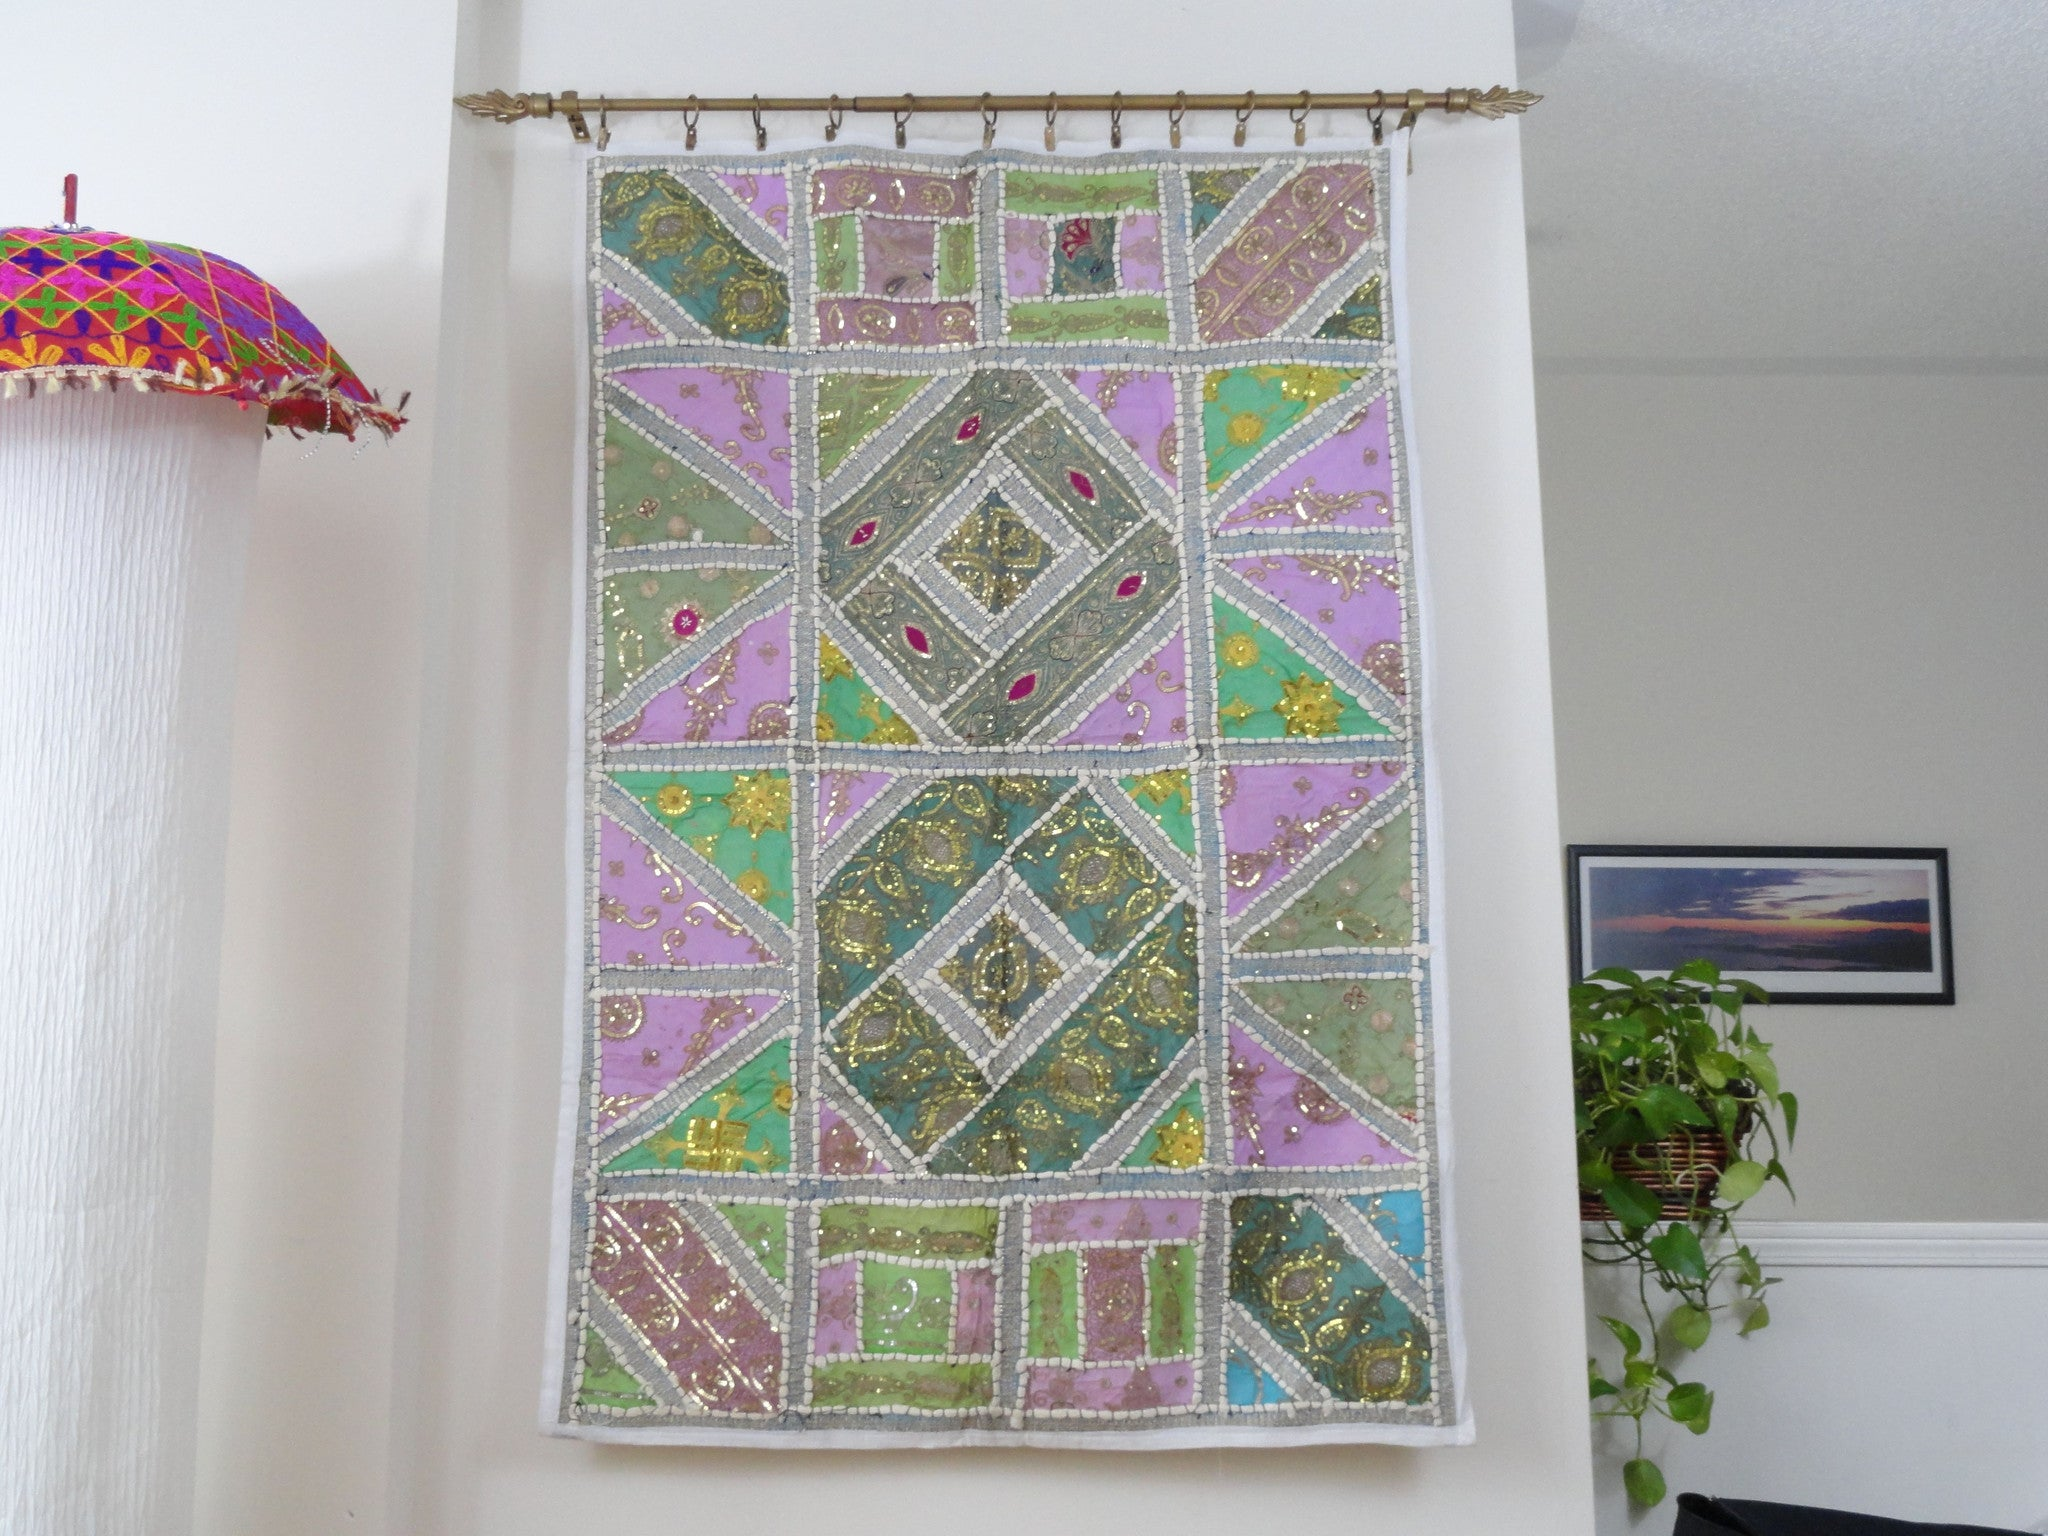 Indian tapestry wall hanging. Fabric Wall Tapestry. Jade  n  Ivory-embroidery and patchwork wall decor. Indian ethnic wall tapestry.  Artikrti 3d5e1a3c5c